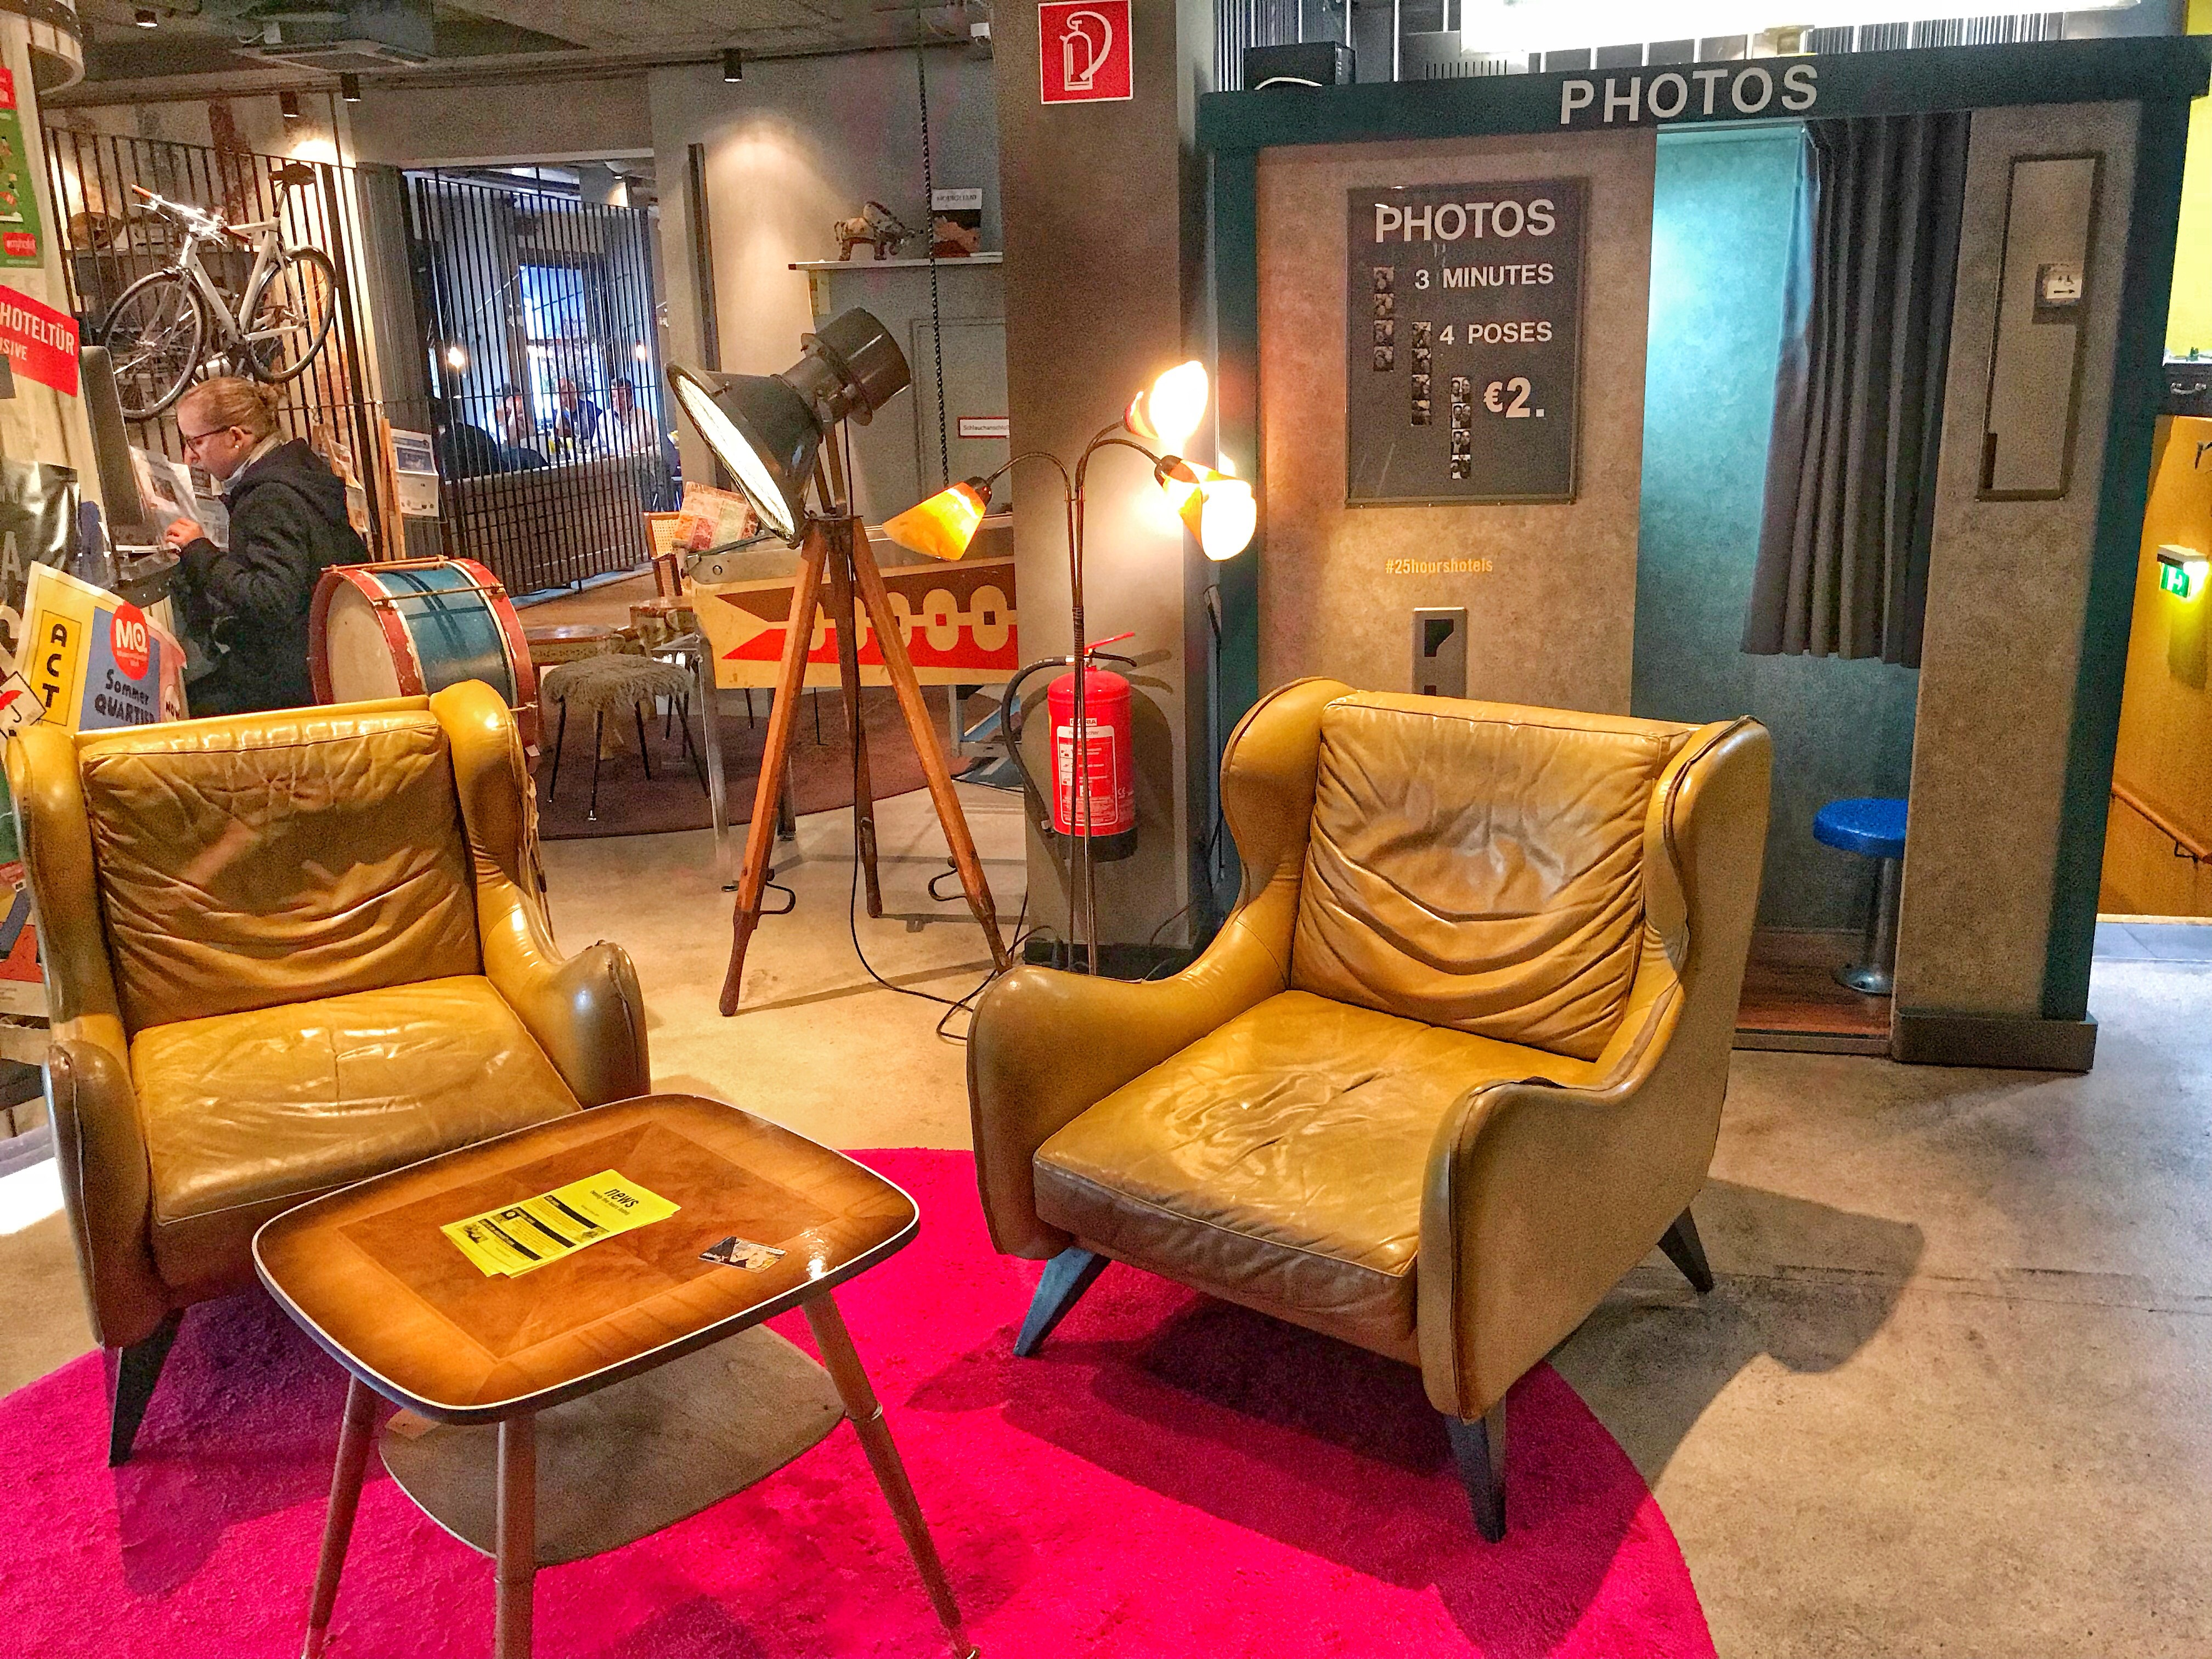 Quirky Circus Themed Hotel 25hours Vienna Museumsquartier Enjoy